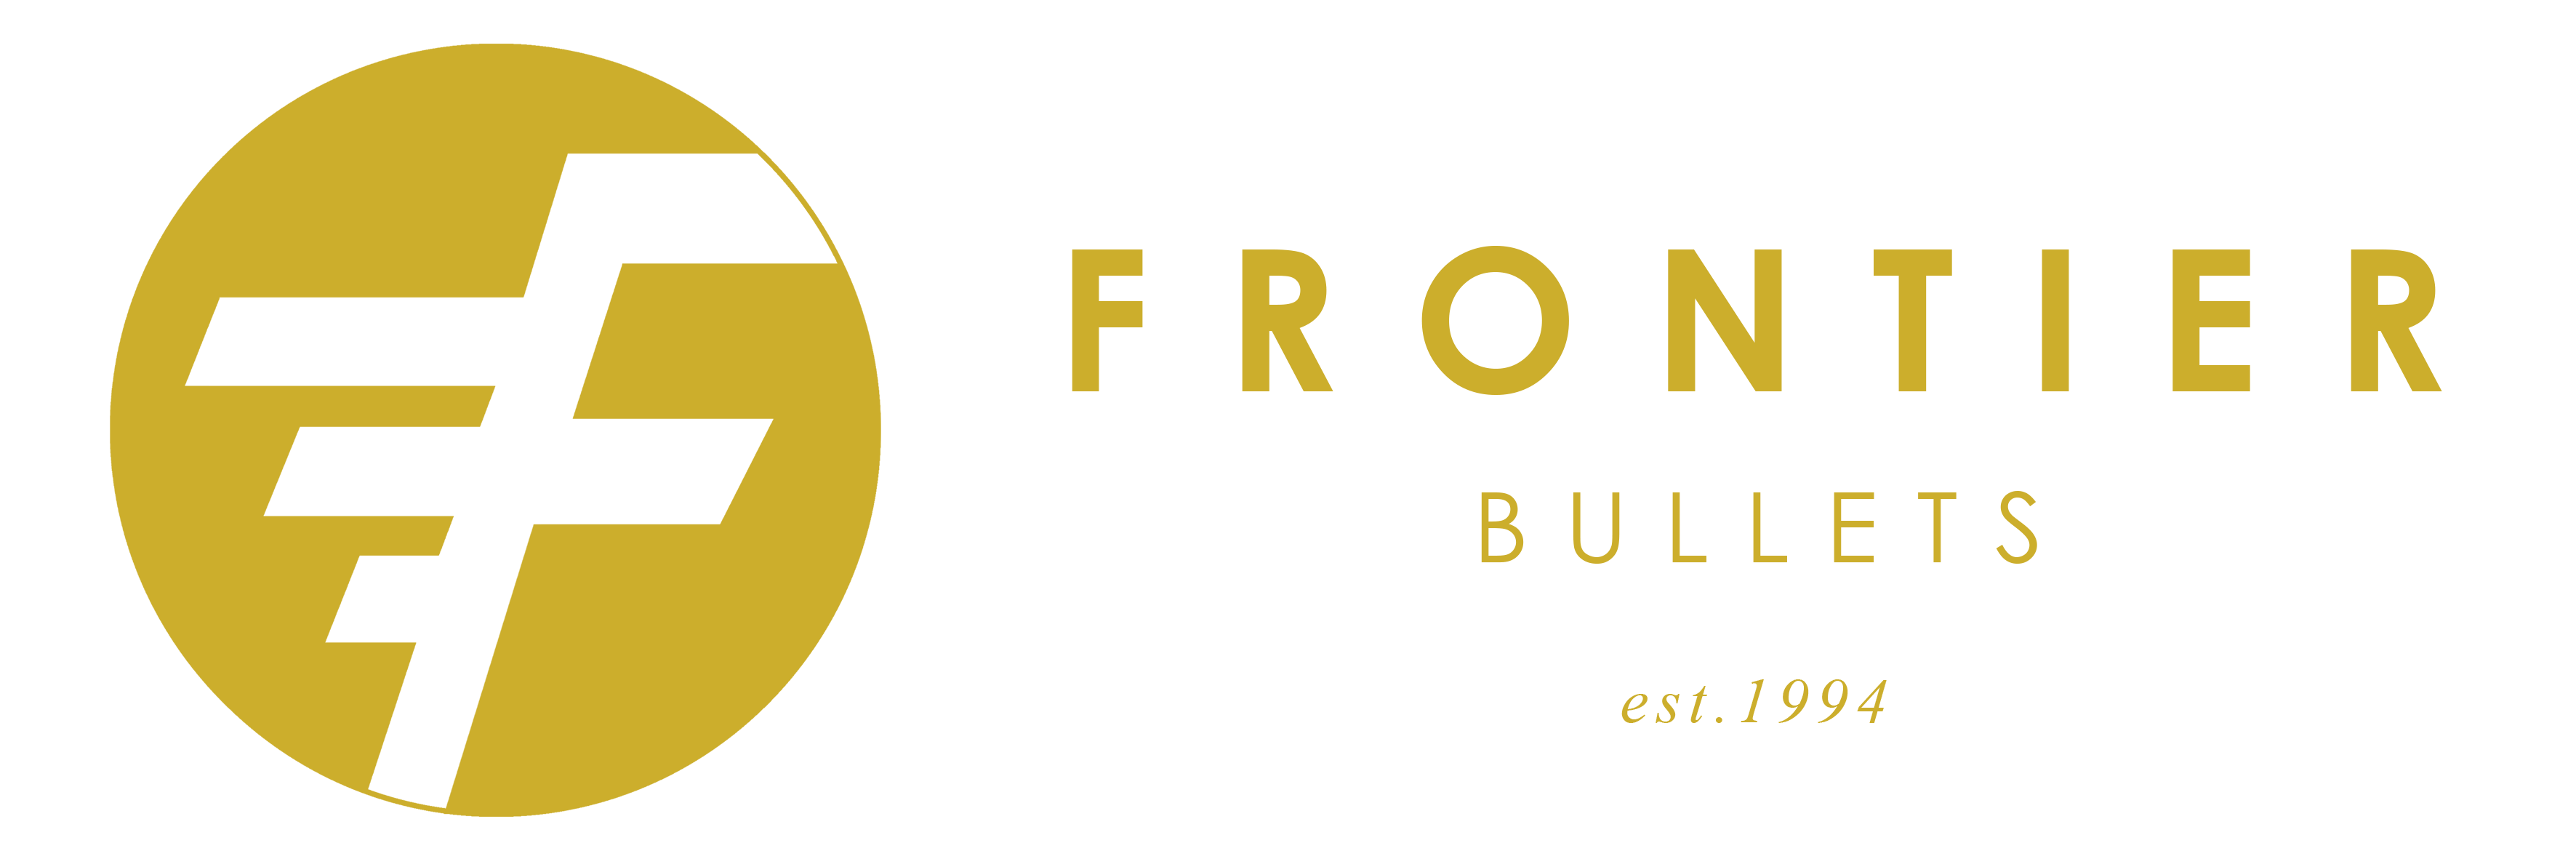 Frontier-Bullets-2016